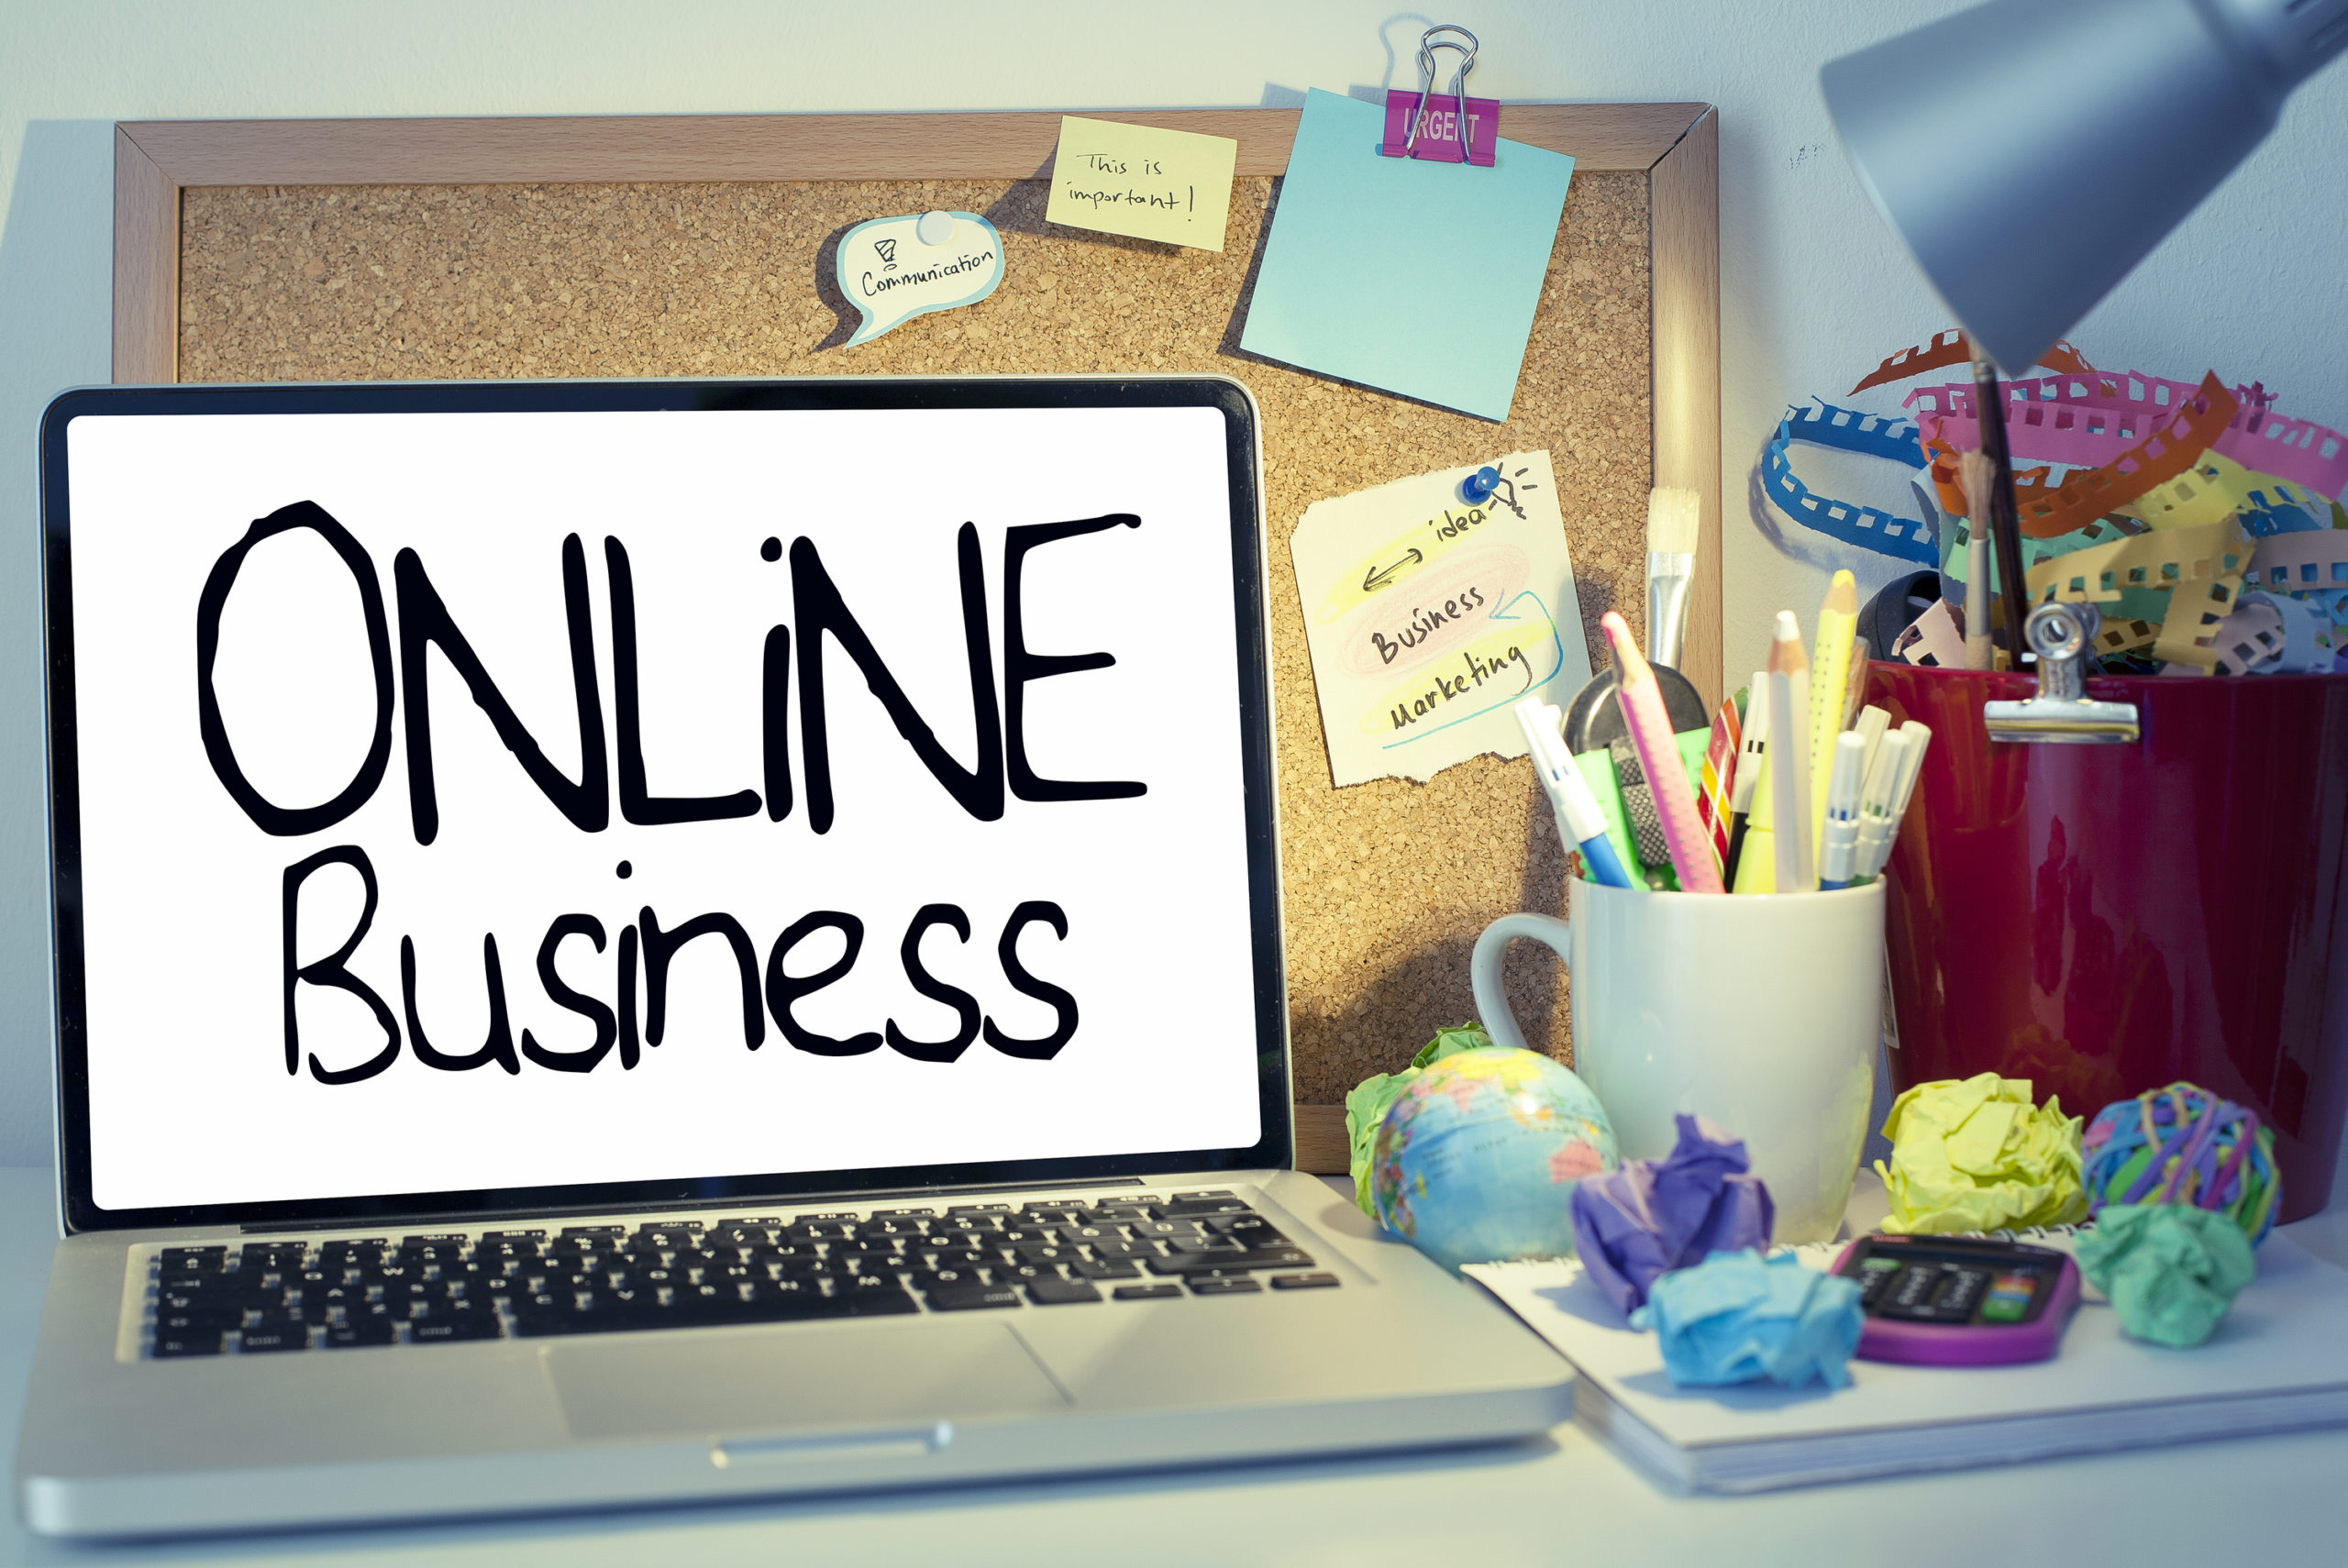 7 Steps to Starting a Small Business Online